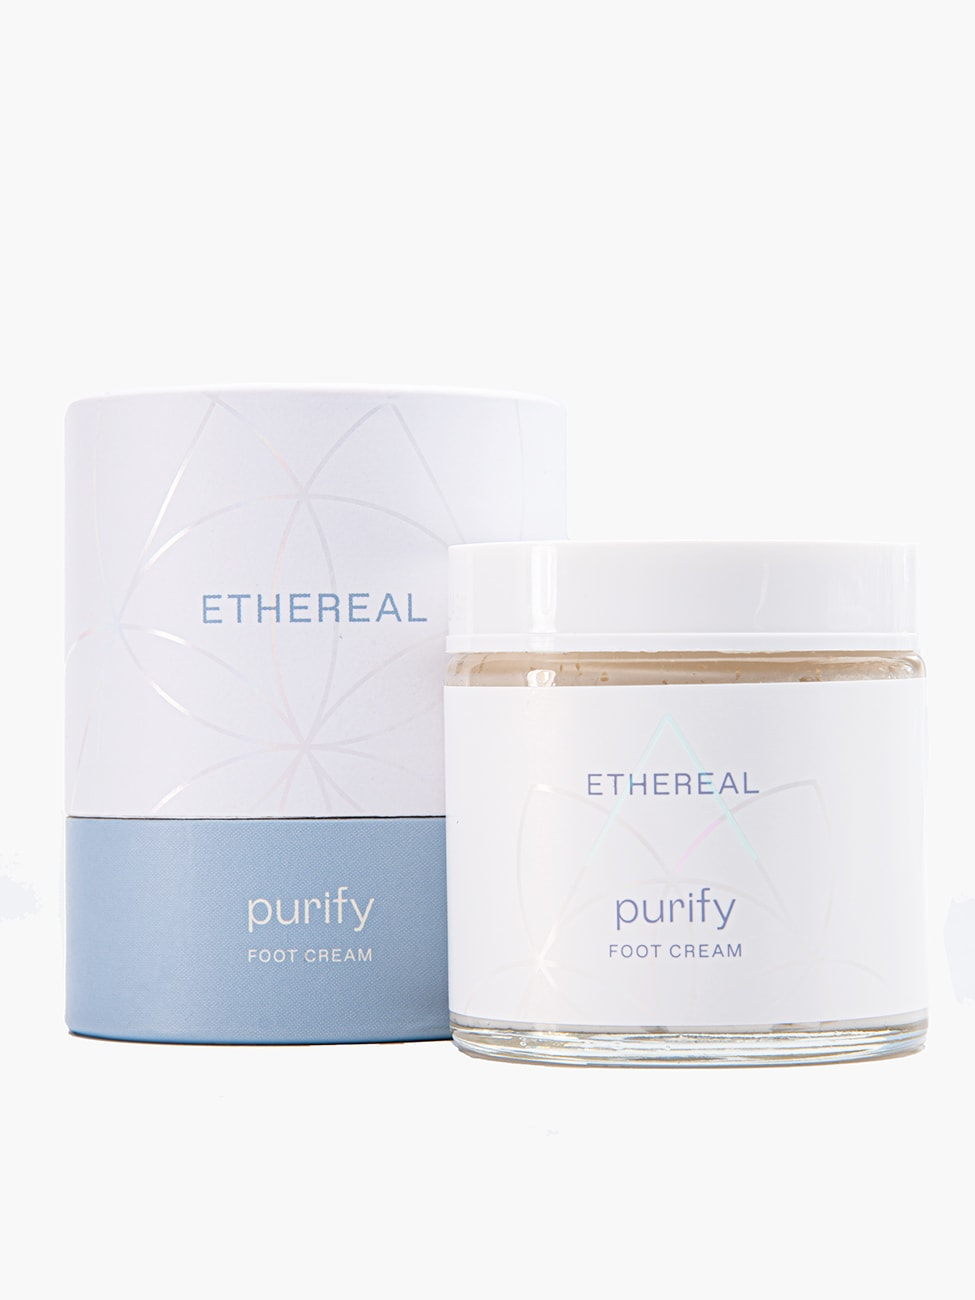 Pyrify_Cream_Package_Ethereal_Dermocosmetics_Skincare_Handmade_Greek_Products